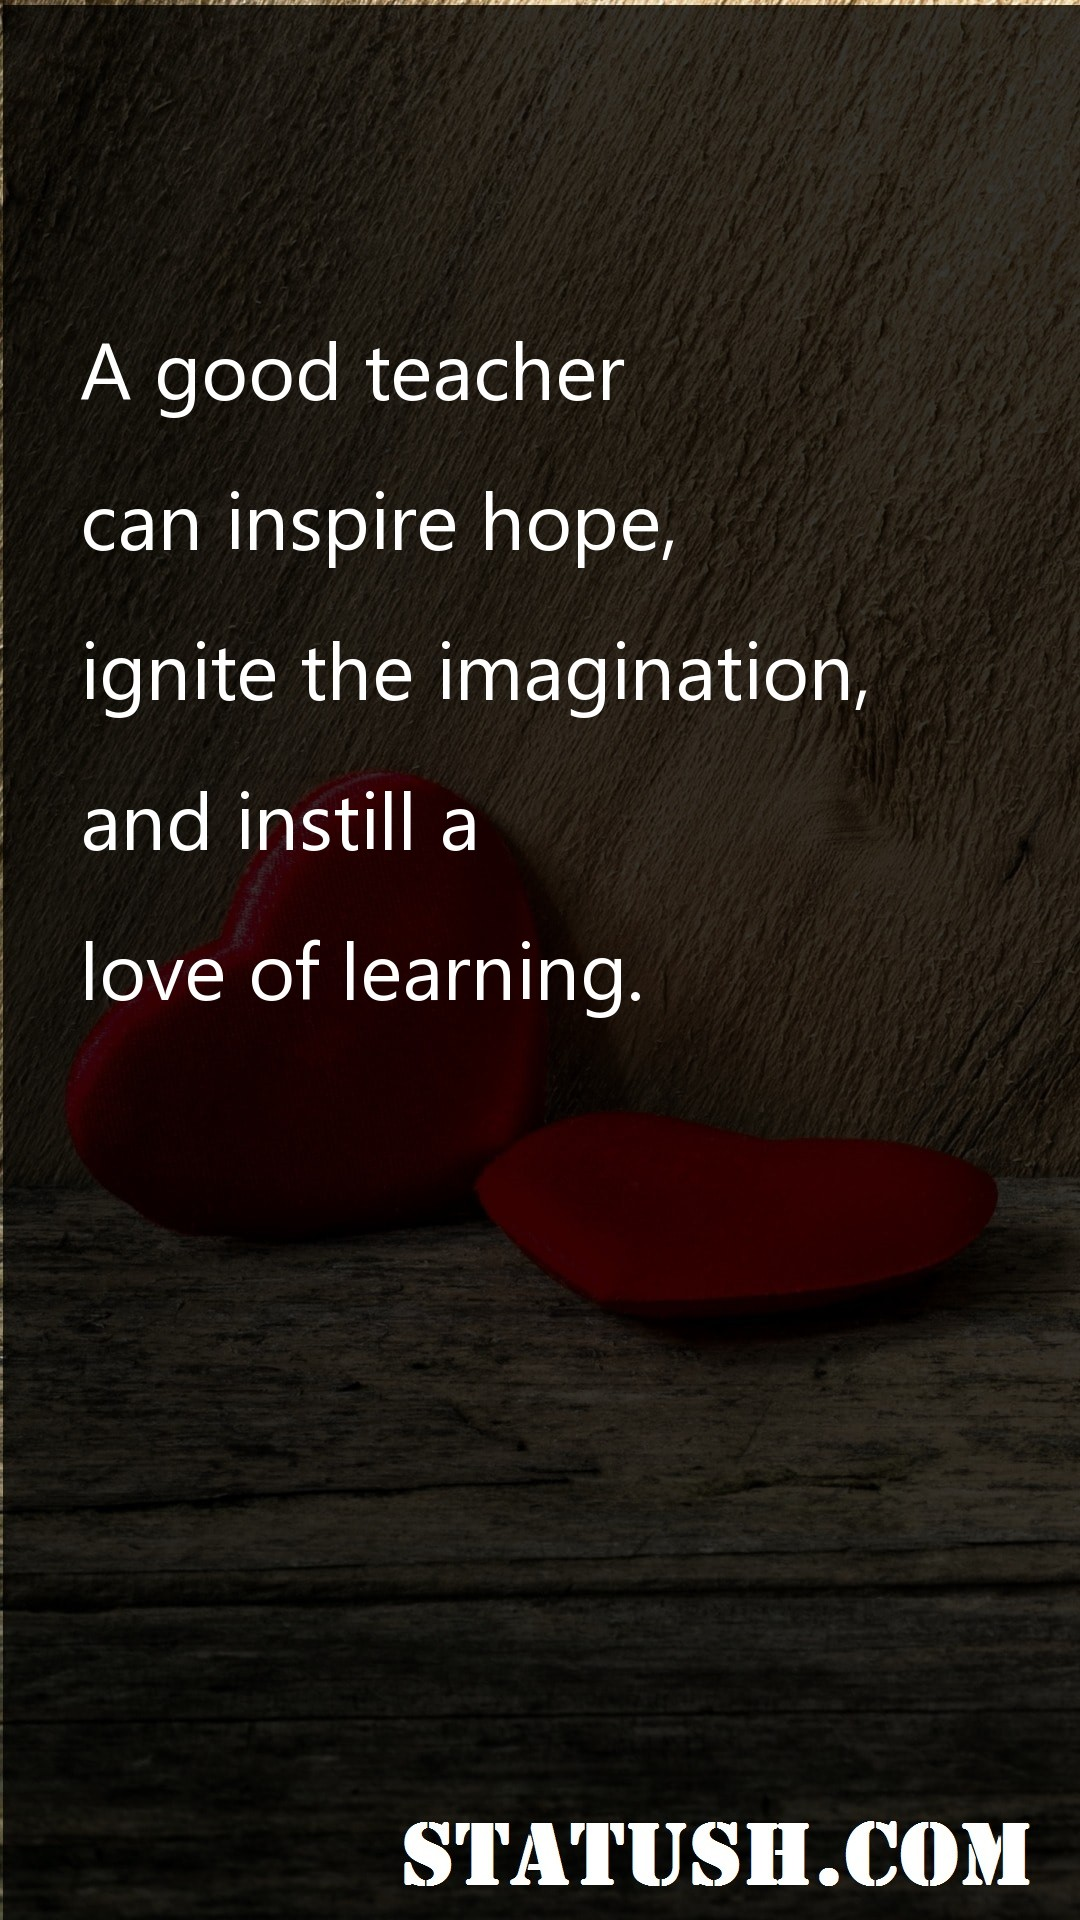 A good teacher can inspire hope